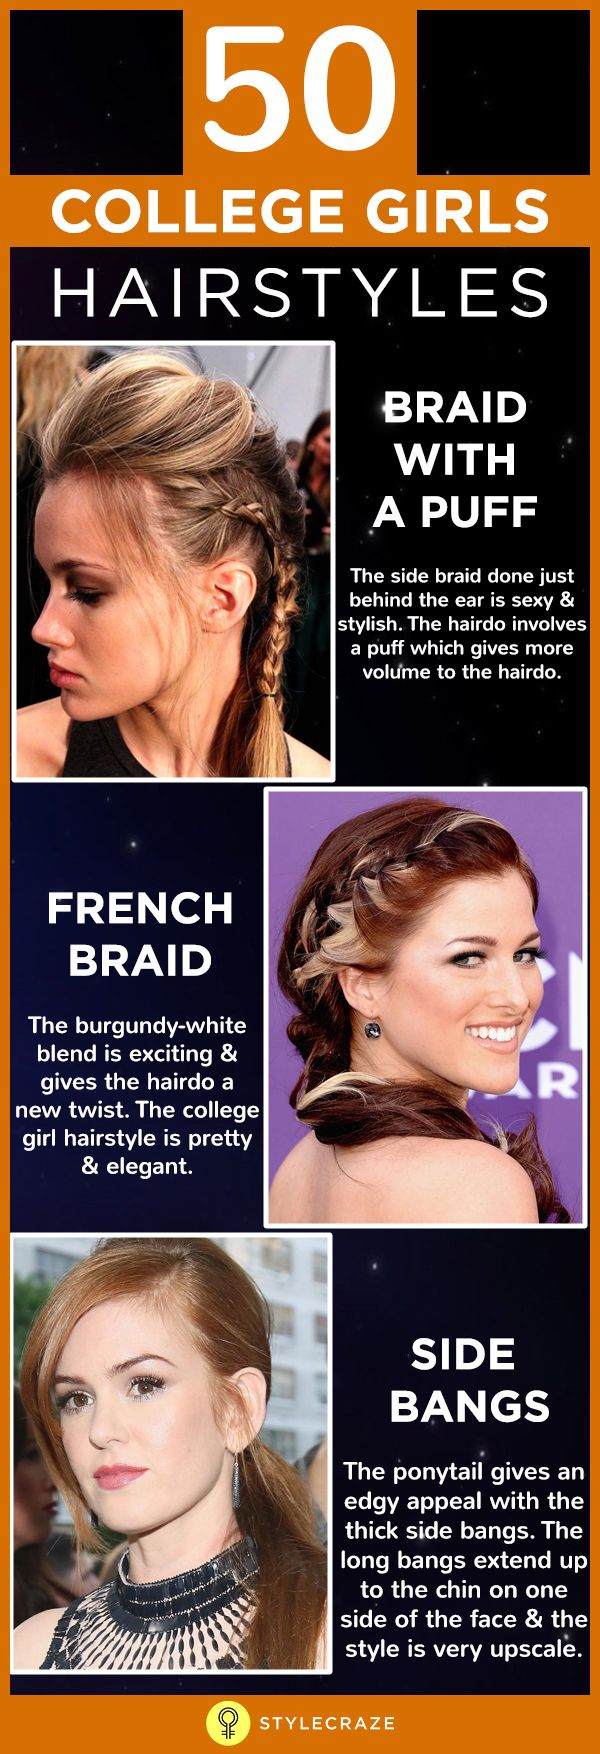 5622 best hairstyles images on pinterest | hairdos, hairstyles and